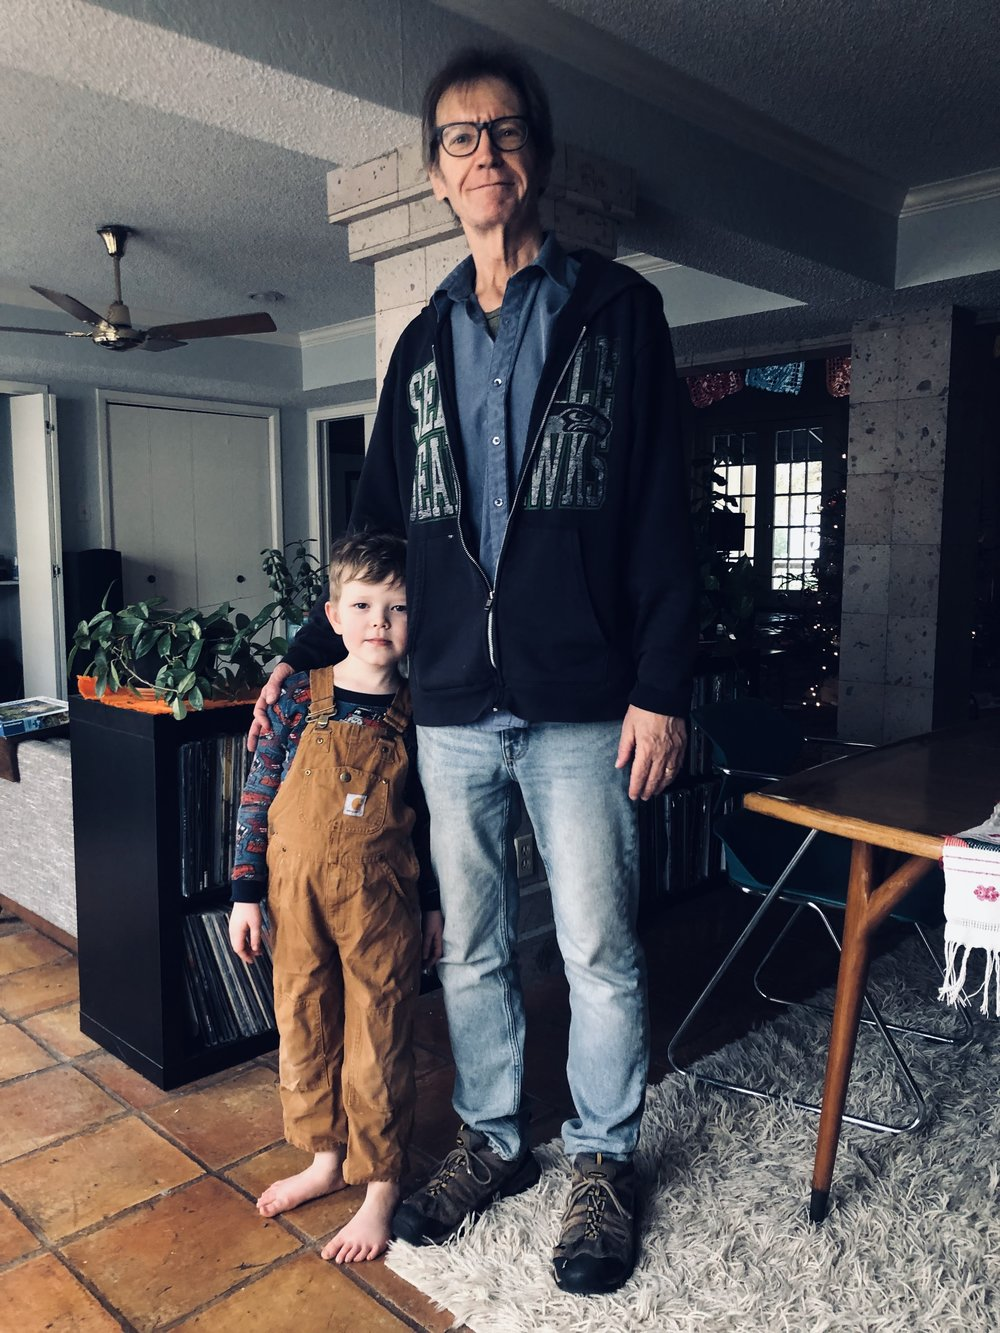 This just makes me think of American Gothic in a way. And those overalls, which we gave him, are about outgrown, but it gives him a Tom Sawyer look I'm liking a lot right now.